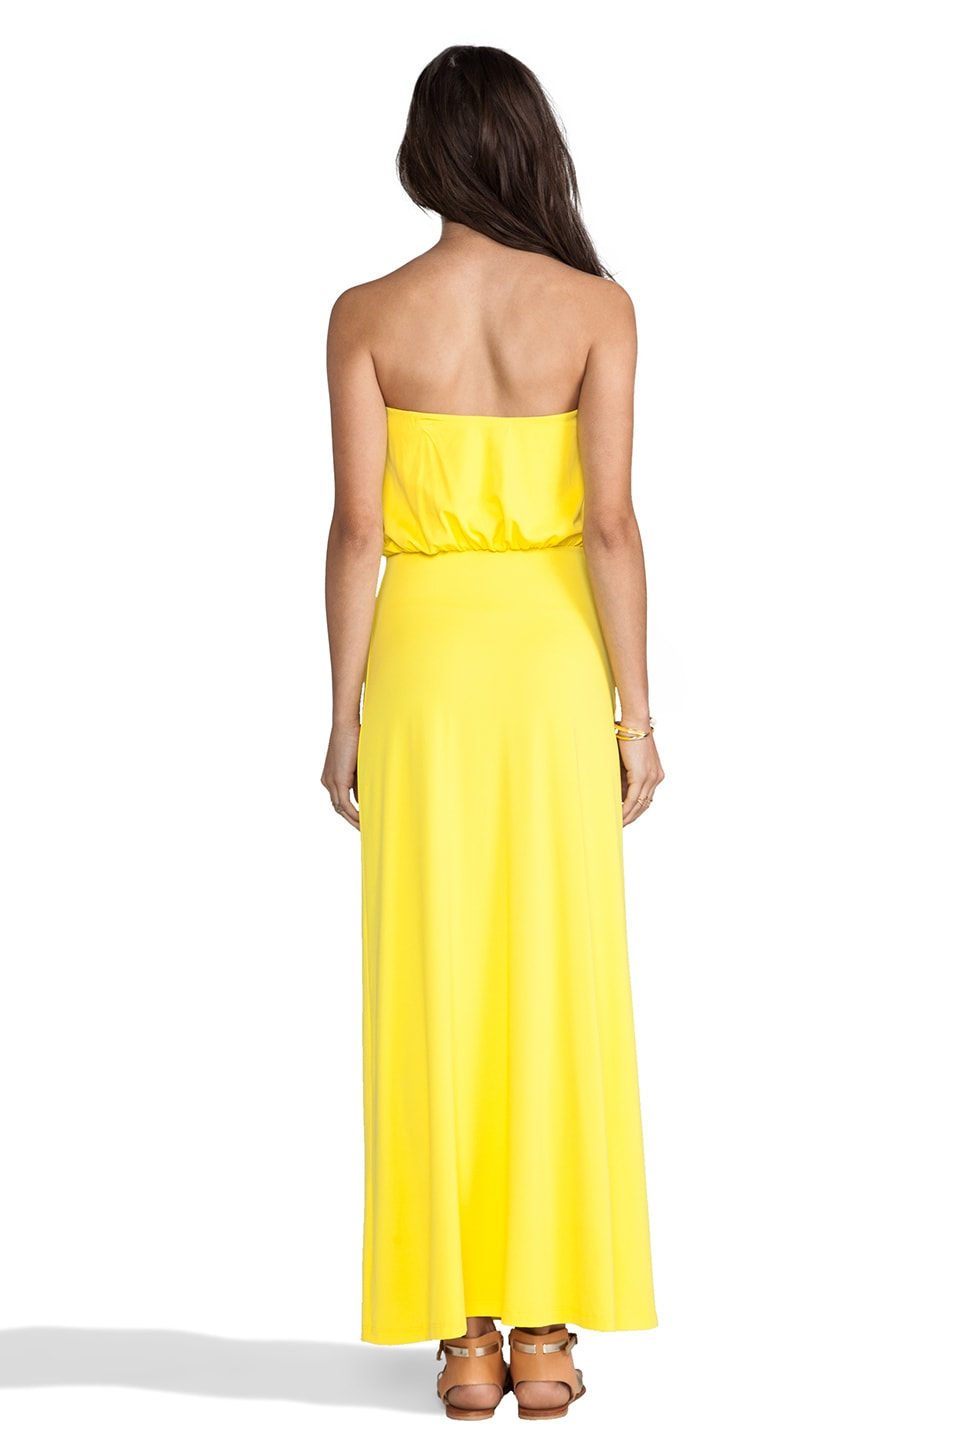 "Susana Monaco Light Supplex Blouson Tube 40"" Dress in Yellowtail"